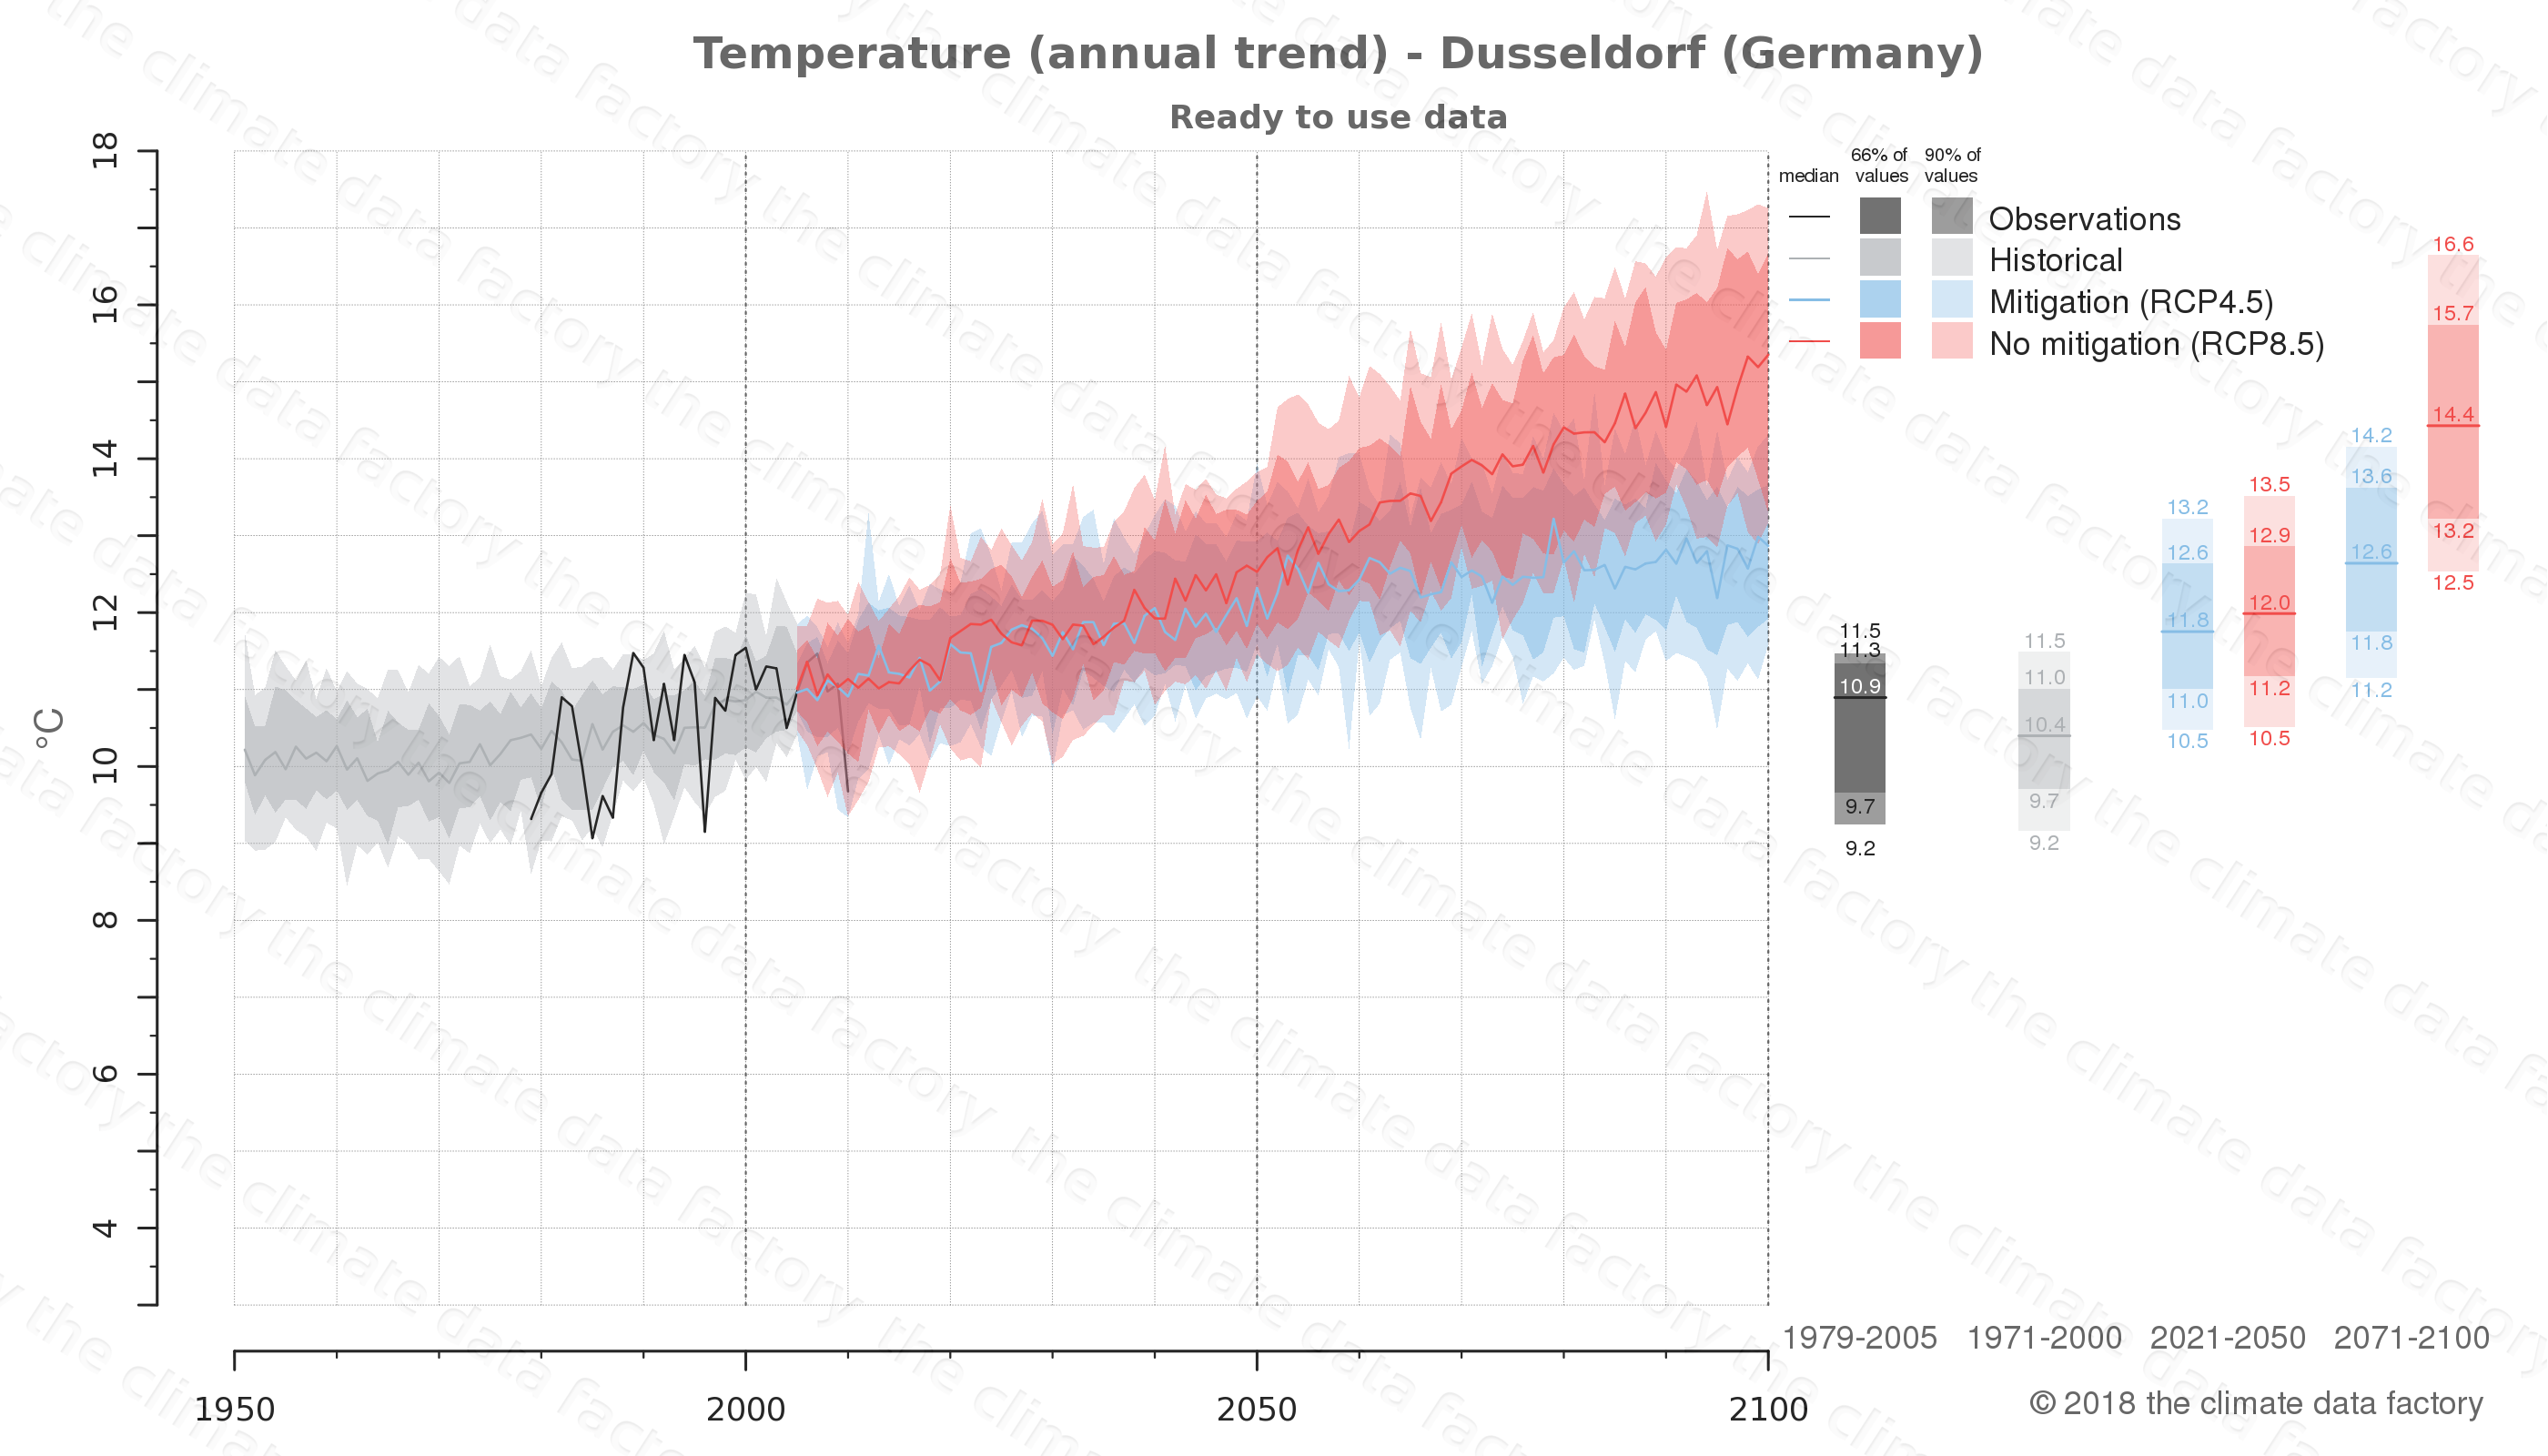 climate change data policy adaptation climate graph city data temperature dusseldorf germany